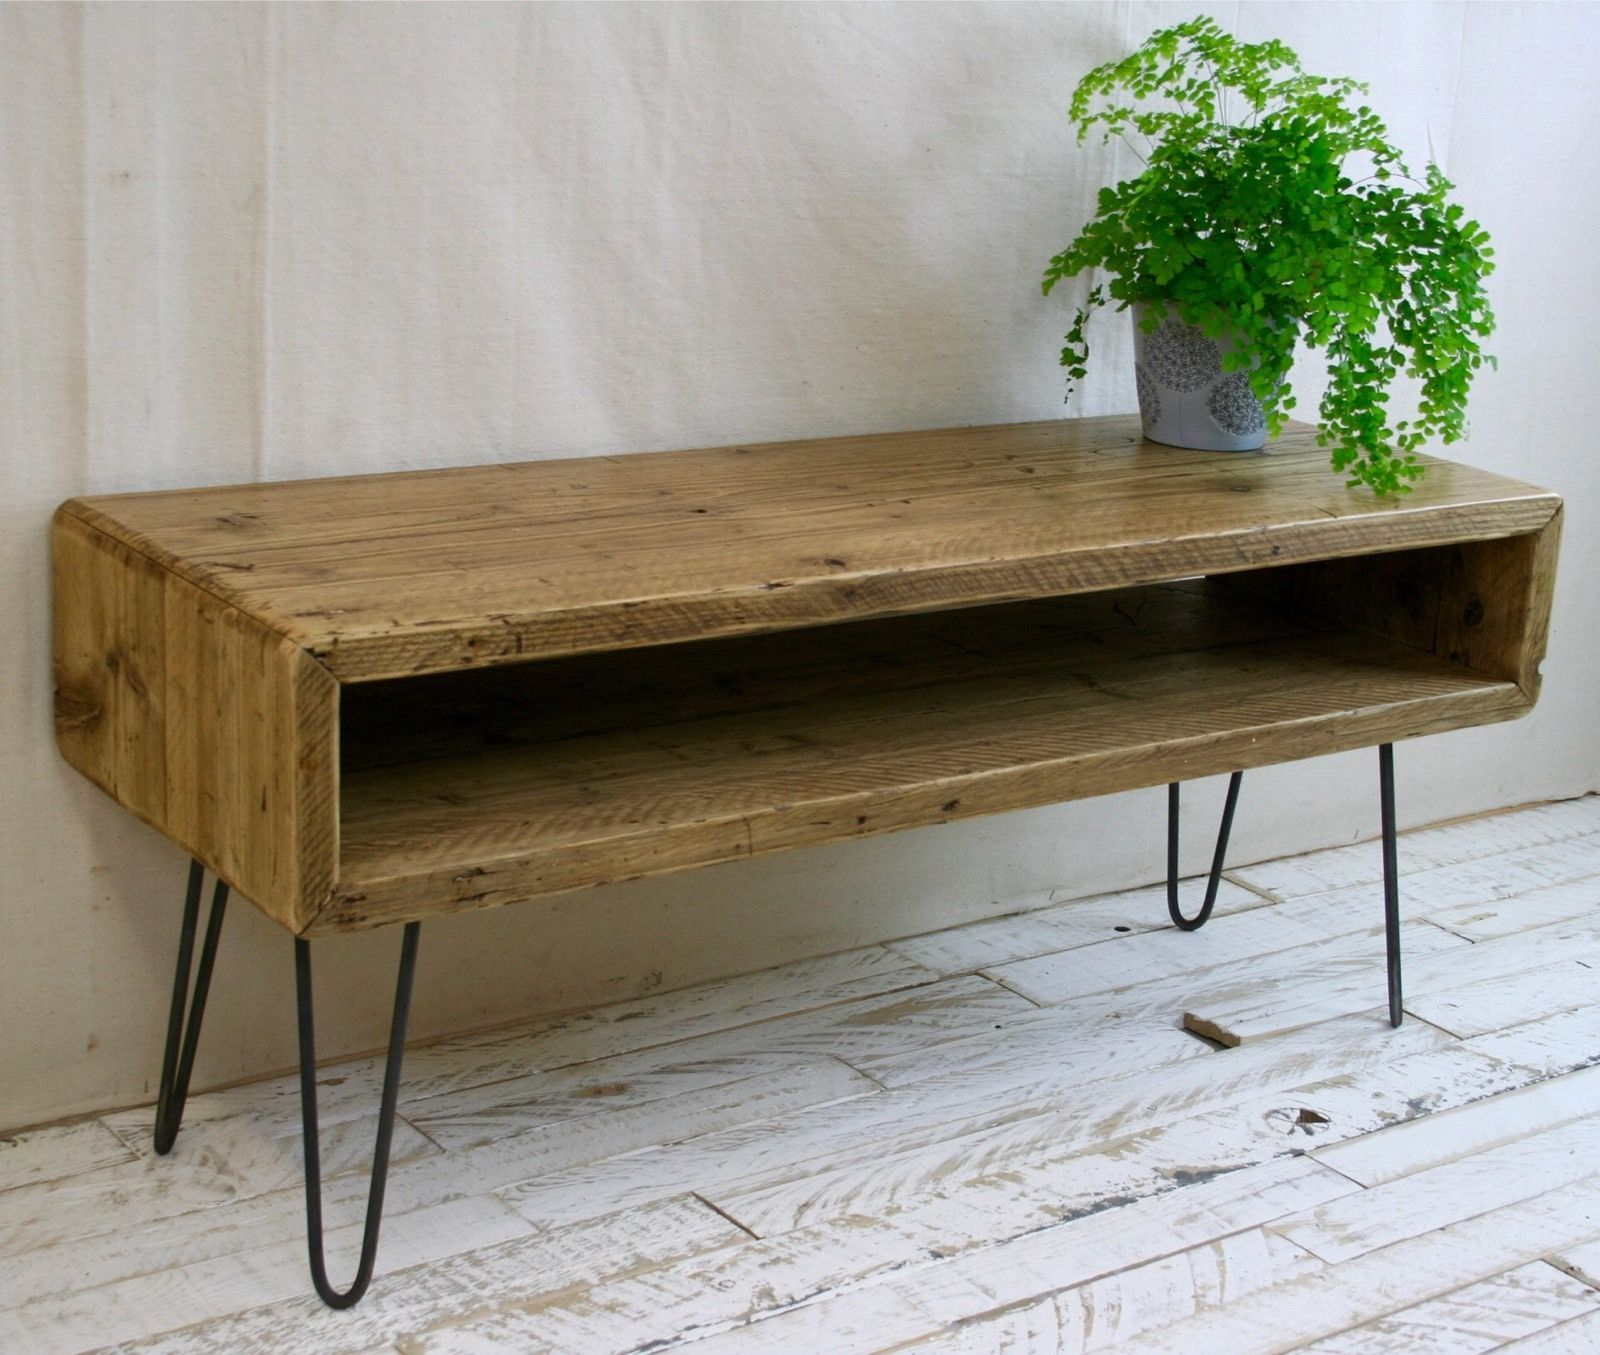 rustic tv stand reclaimed scaffold boards industrial wood unit table furniture scaffold boards. Black Bedroom Furniture Sets. Home Design Ideas